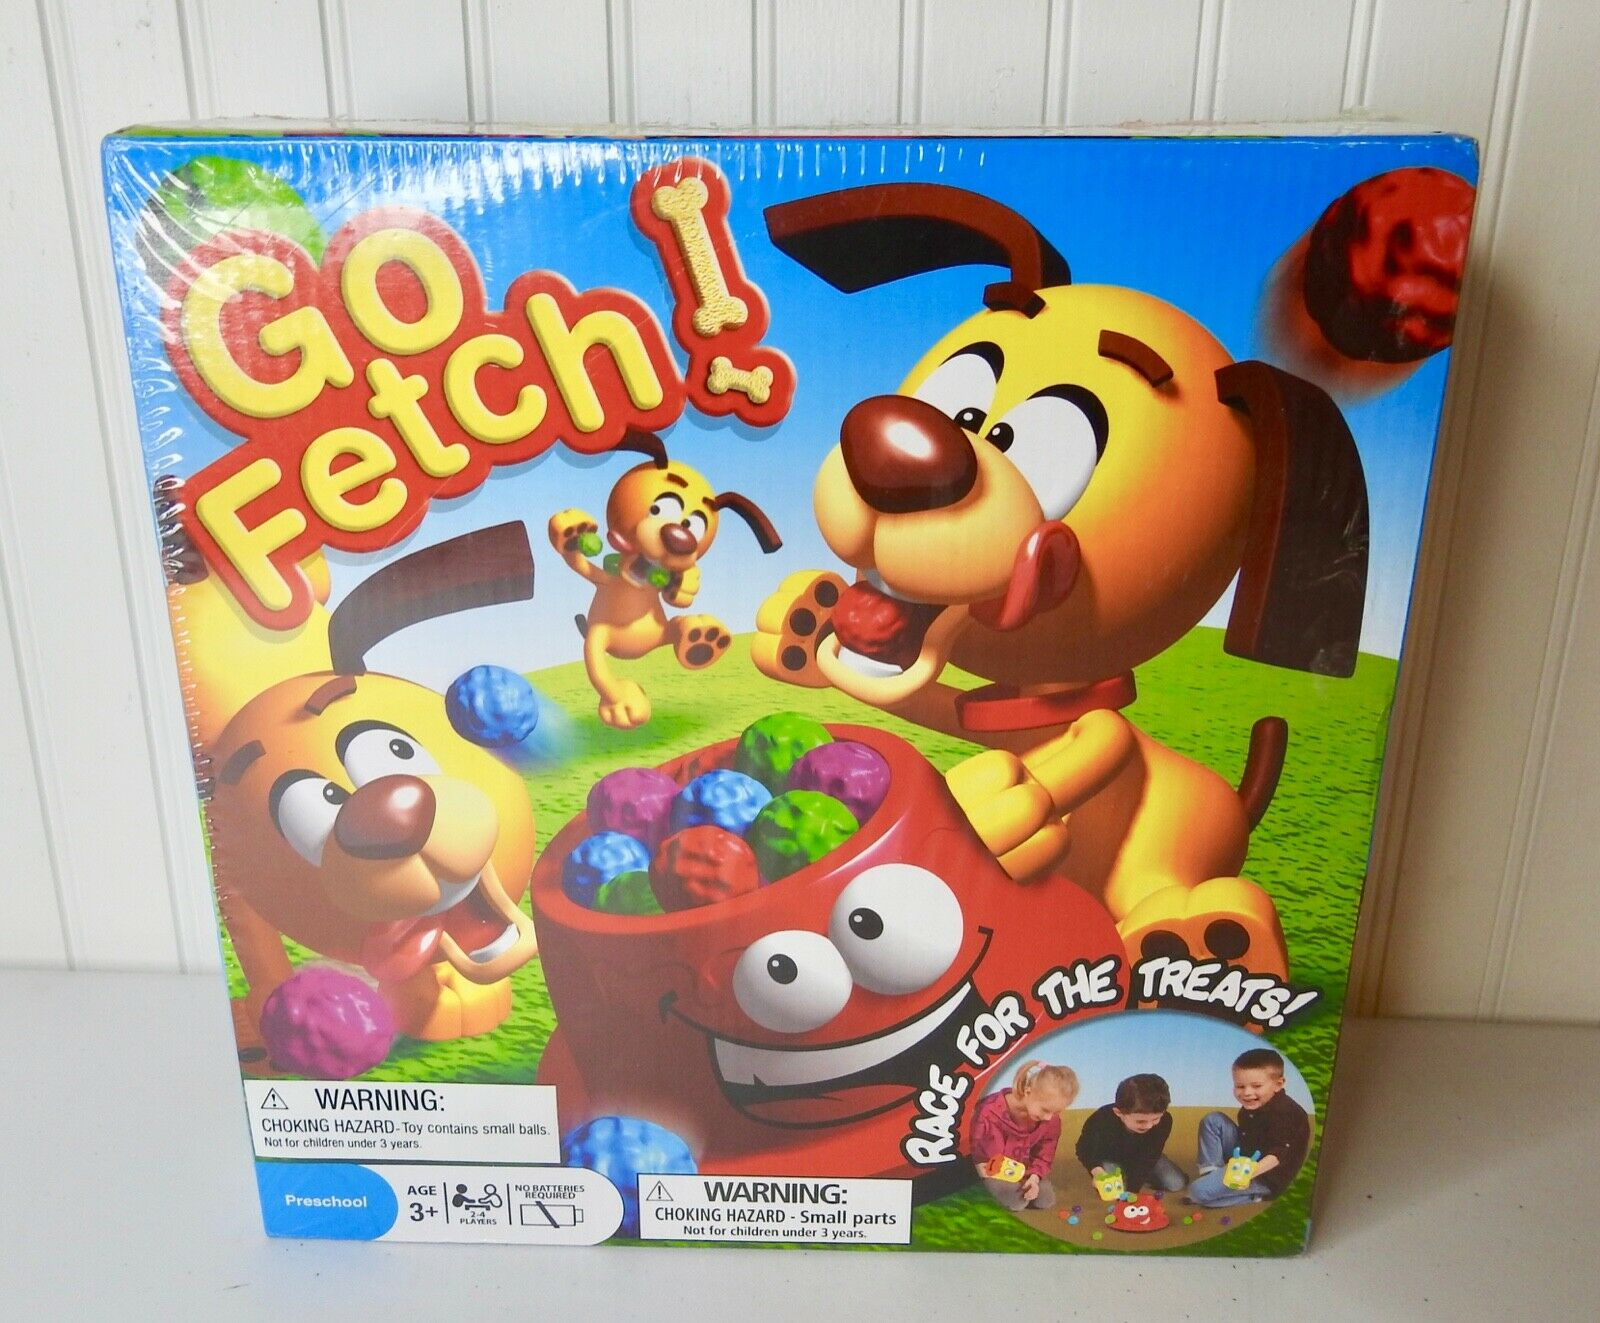 Go Fetch  Game, Esdevium Games, Race For The Treats, Age 3+ Active Game for Kids